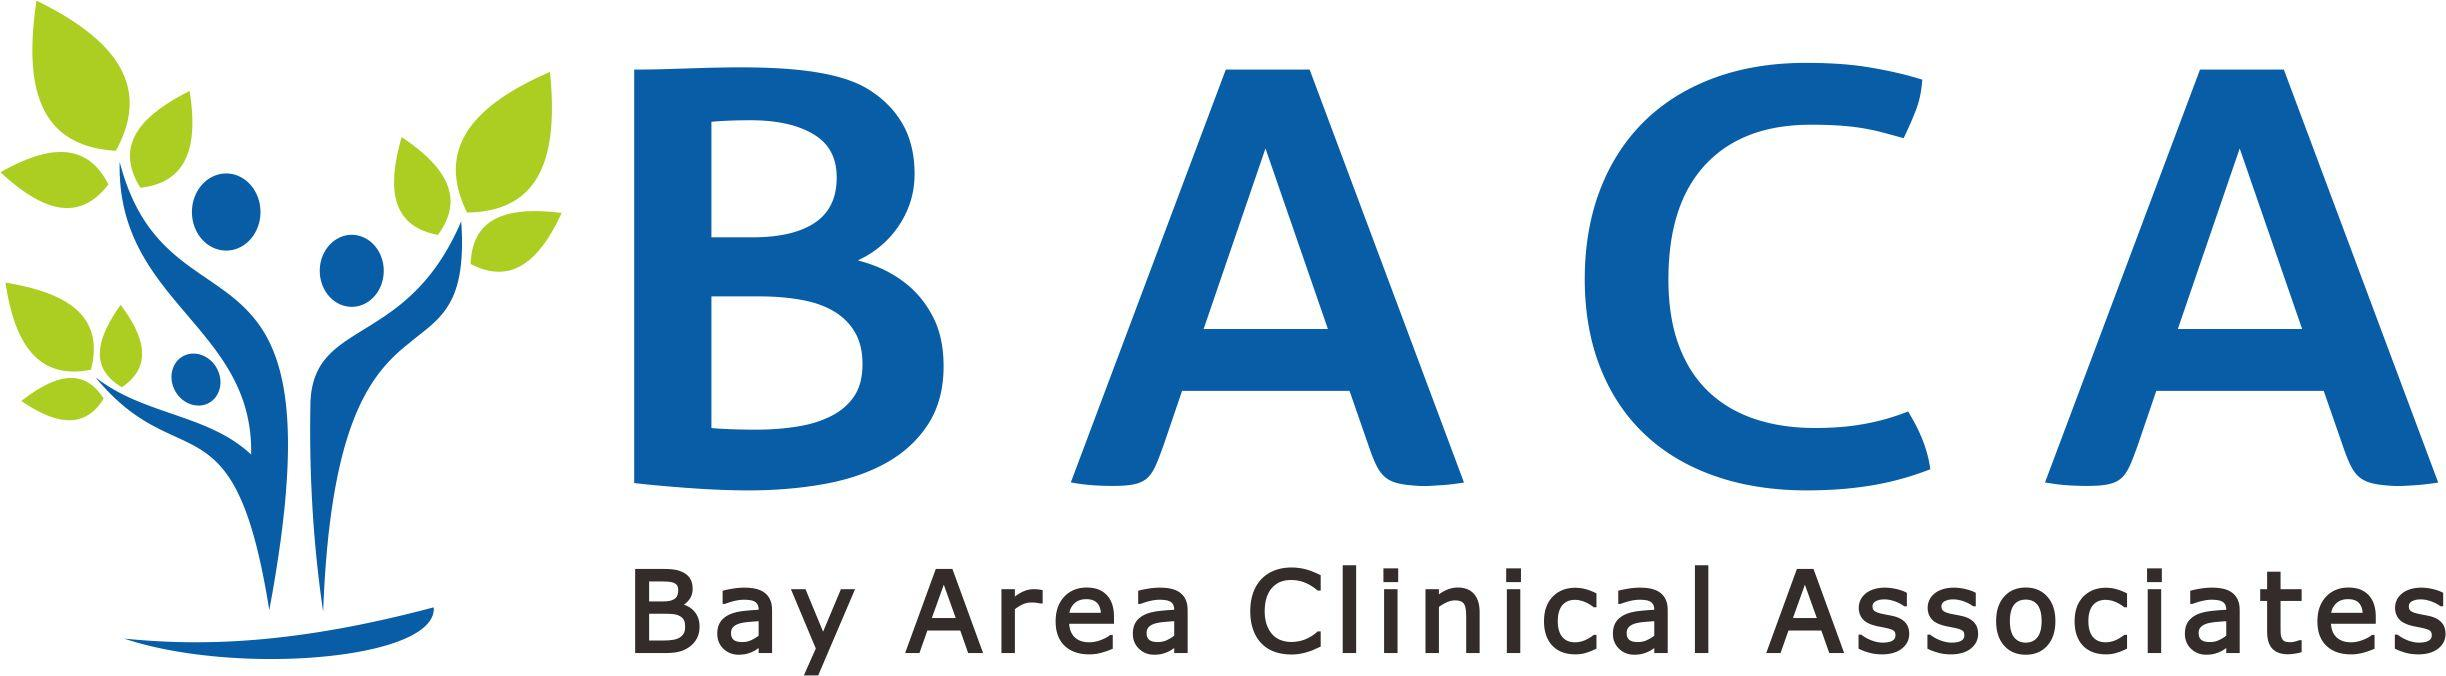 Licensed Clinical Psychologist Job In San Jose Bay Area Clinical